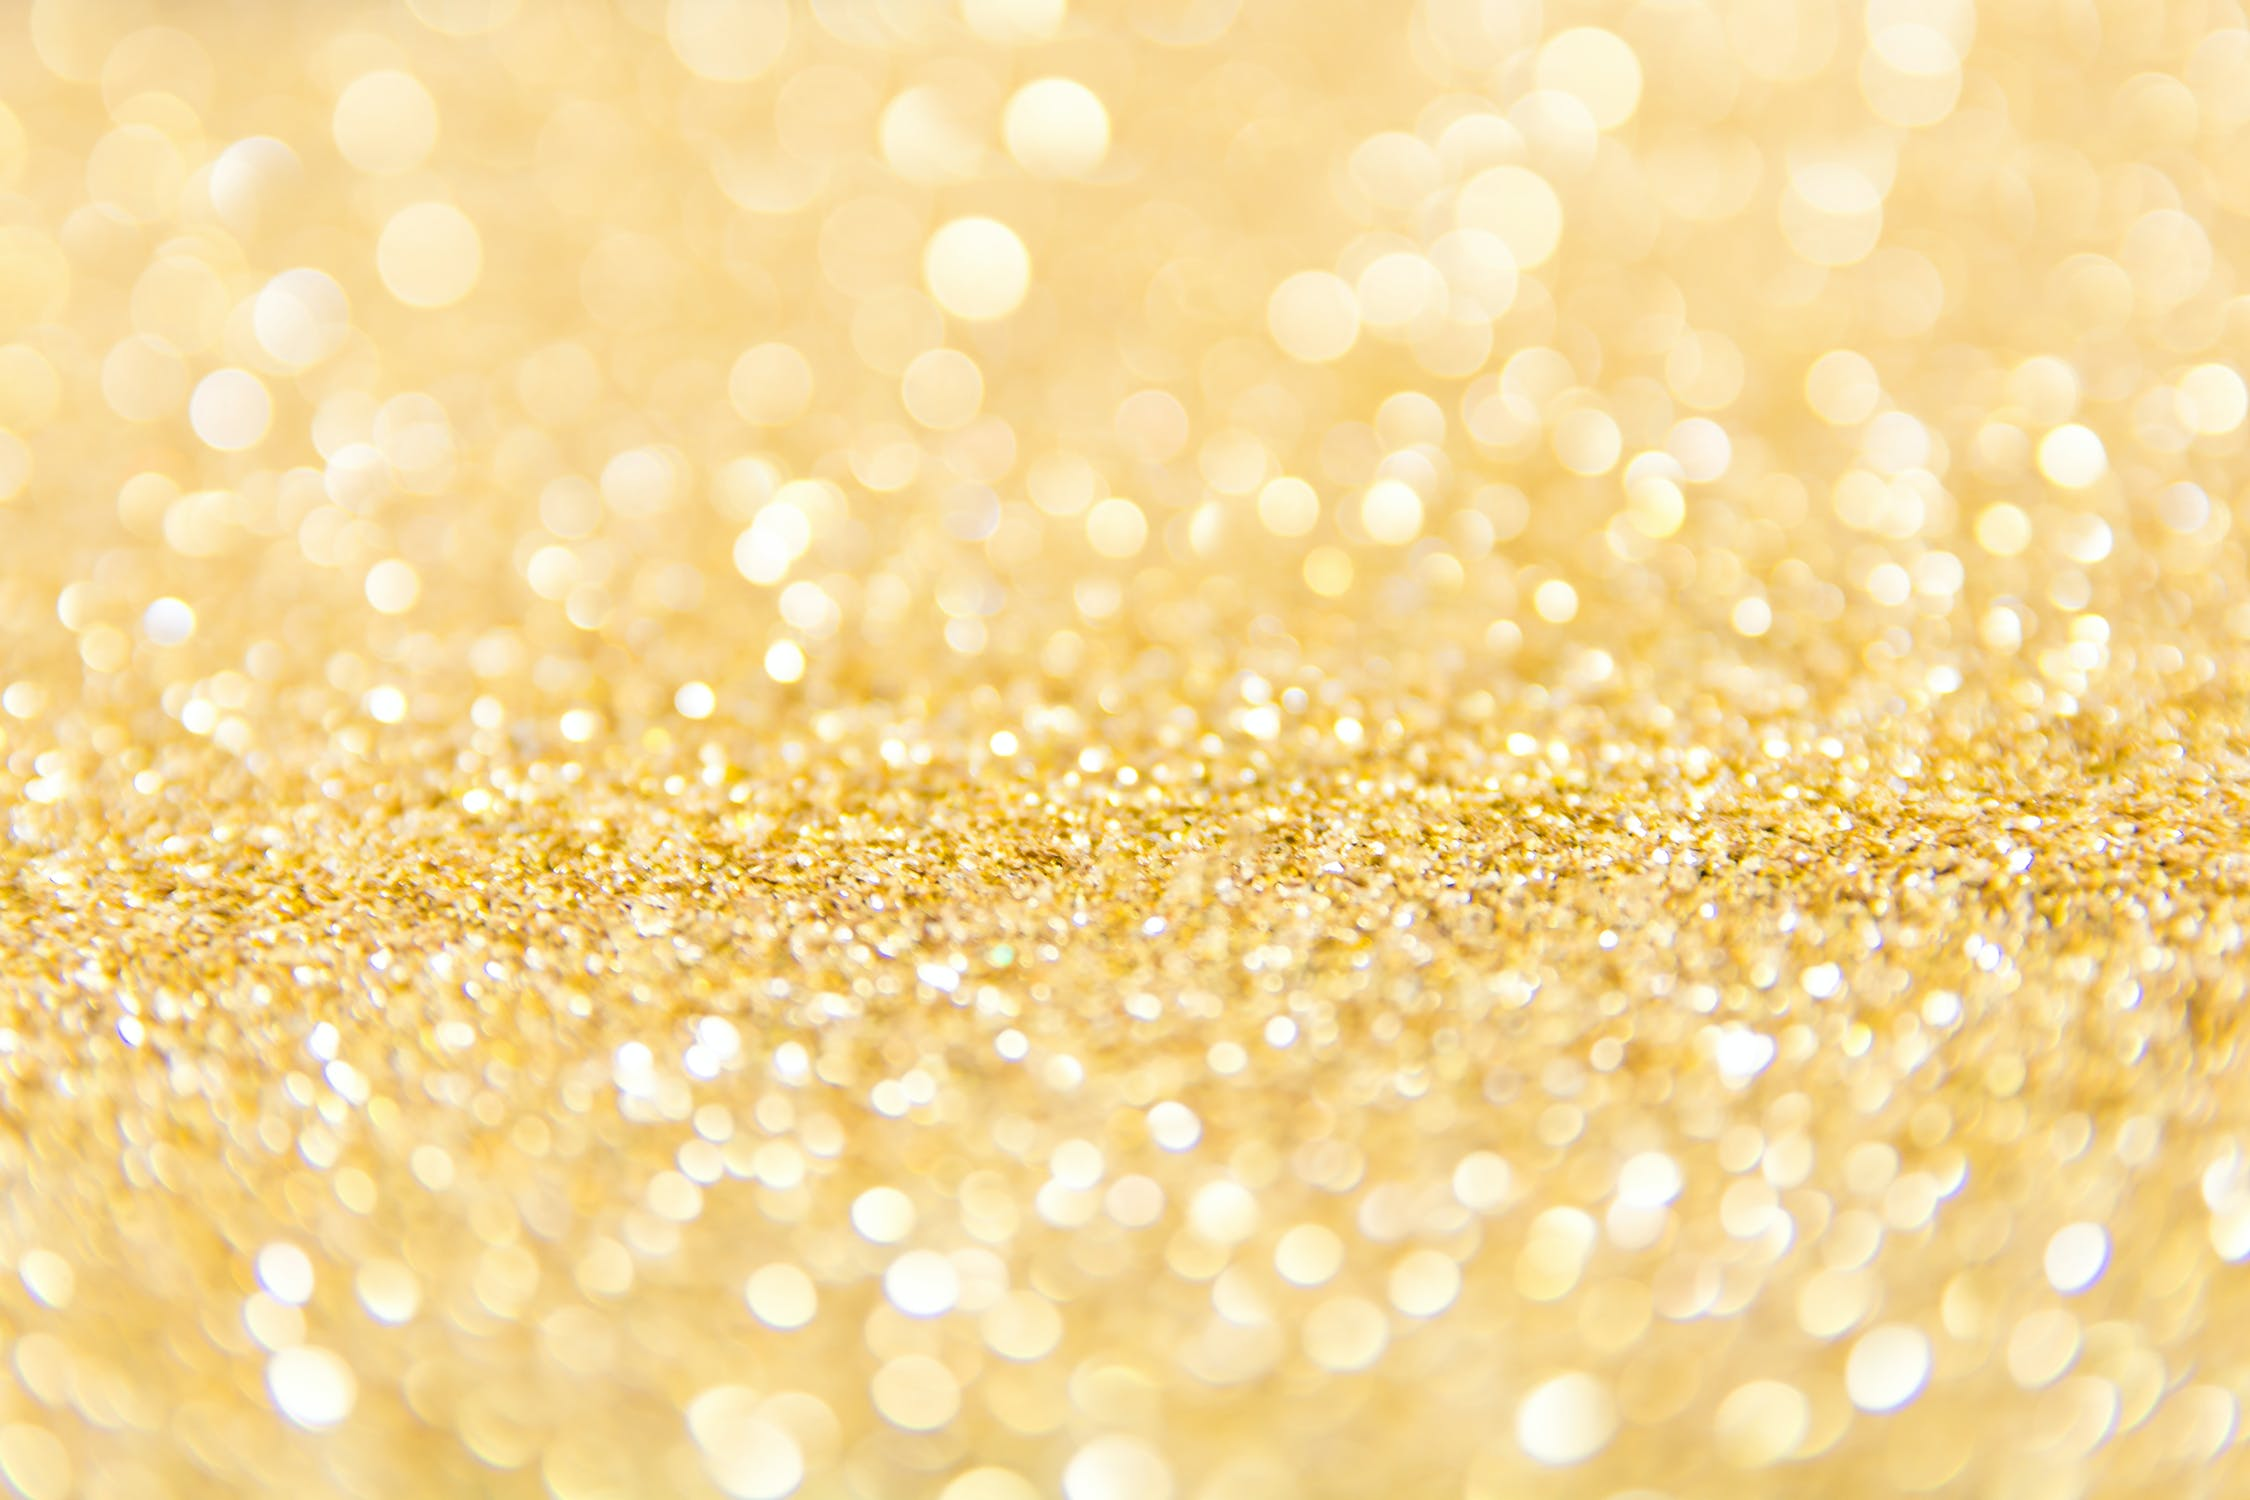 All that glitters is harming the environment